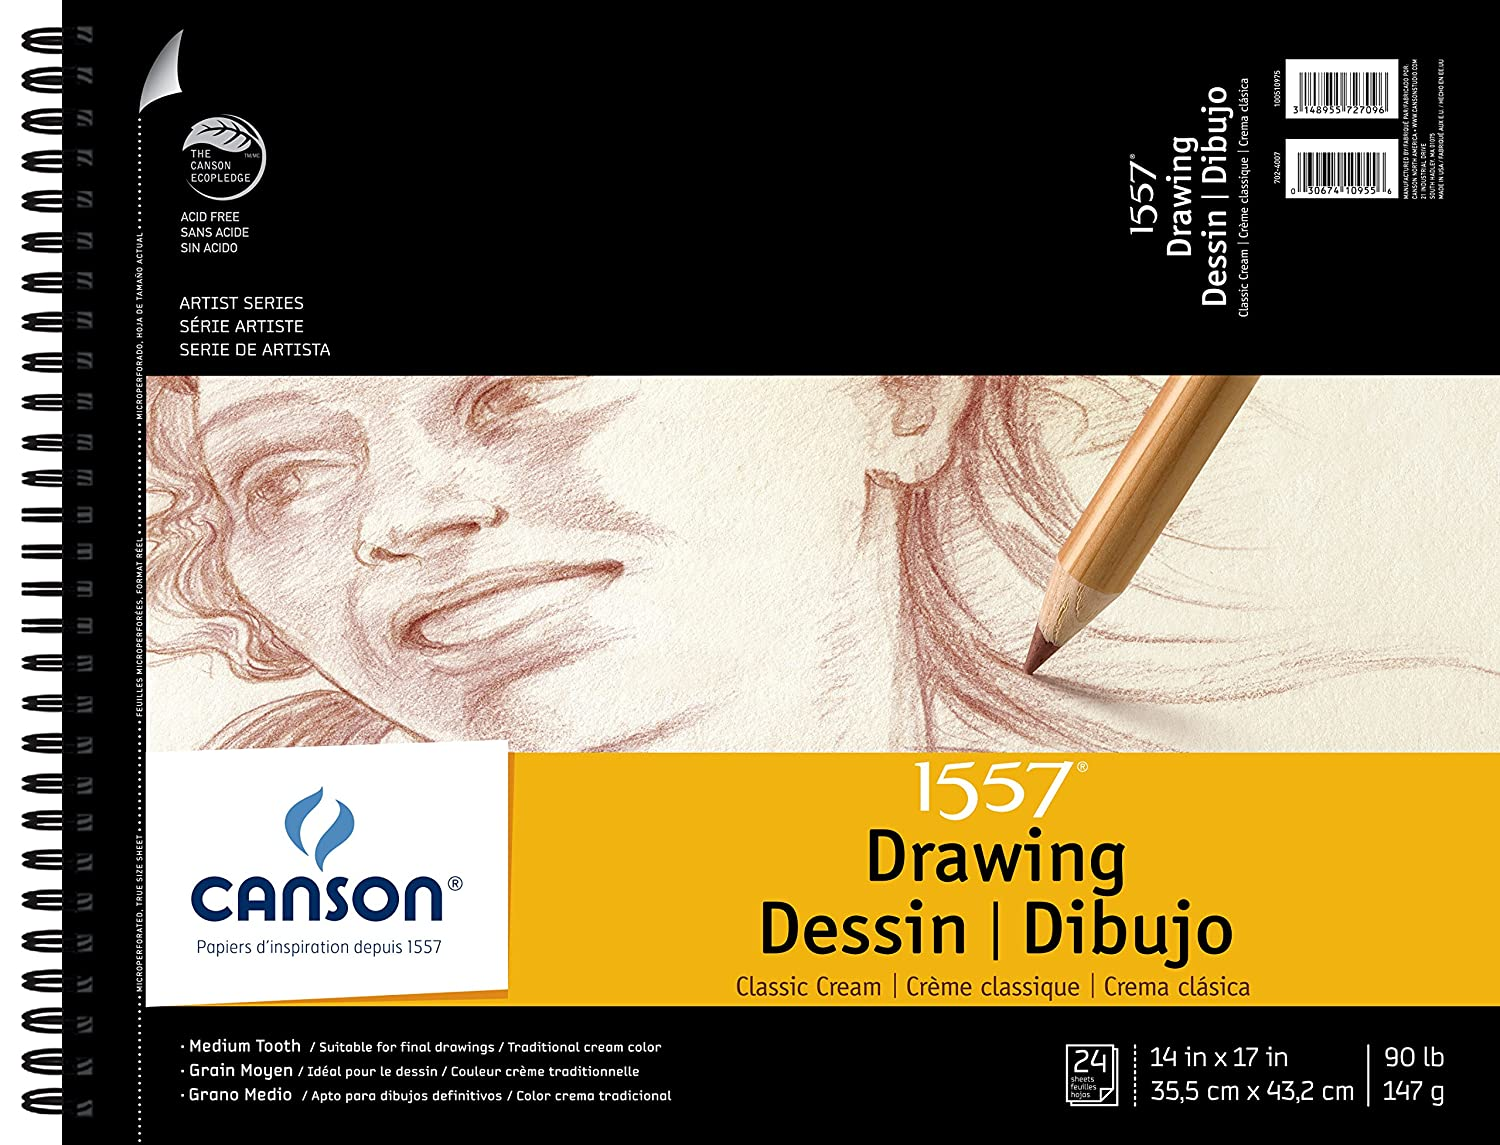 Canson Artist Series 1557 Cream Drawing Paper Pad for Pen, Ink and Graphite Pencil, Top Wire Bound, 90 Pound, 18 x 24 Inch, Cream, 24 Sheets CANSON Inc 100510976